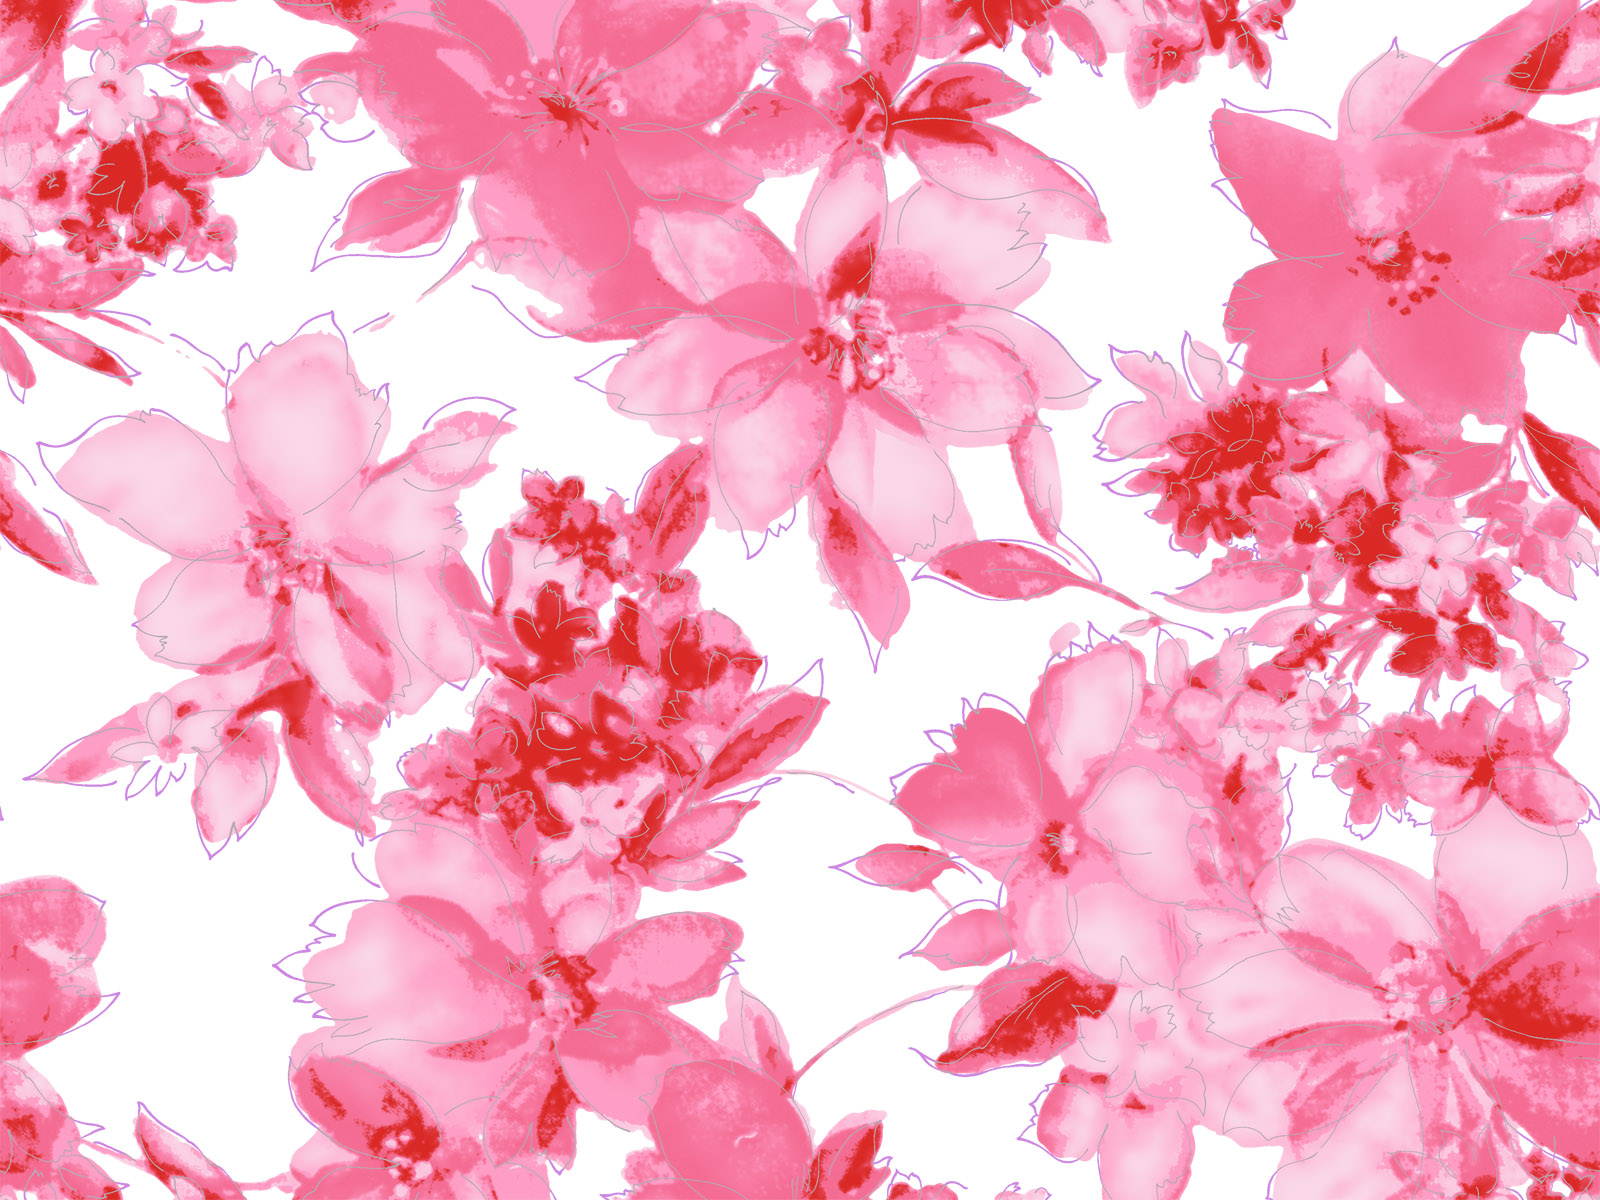 Free pictures of pink flowers clipart 39 units of Pink Flowers Wallpaper clipart